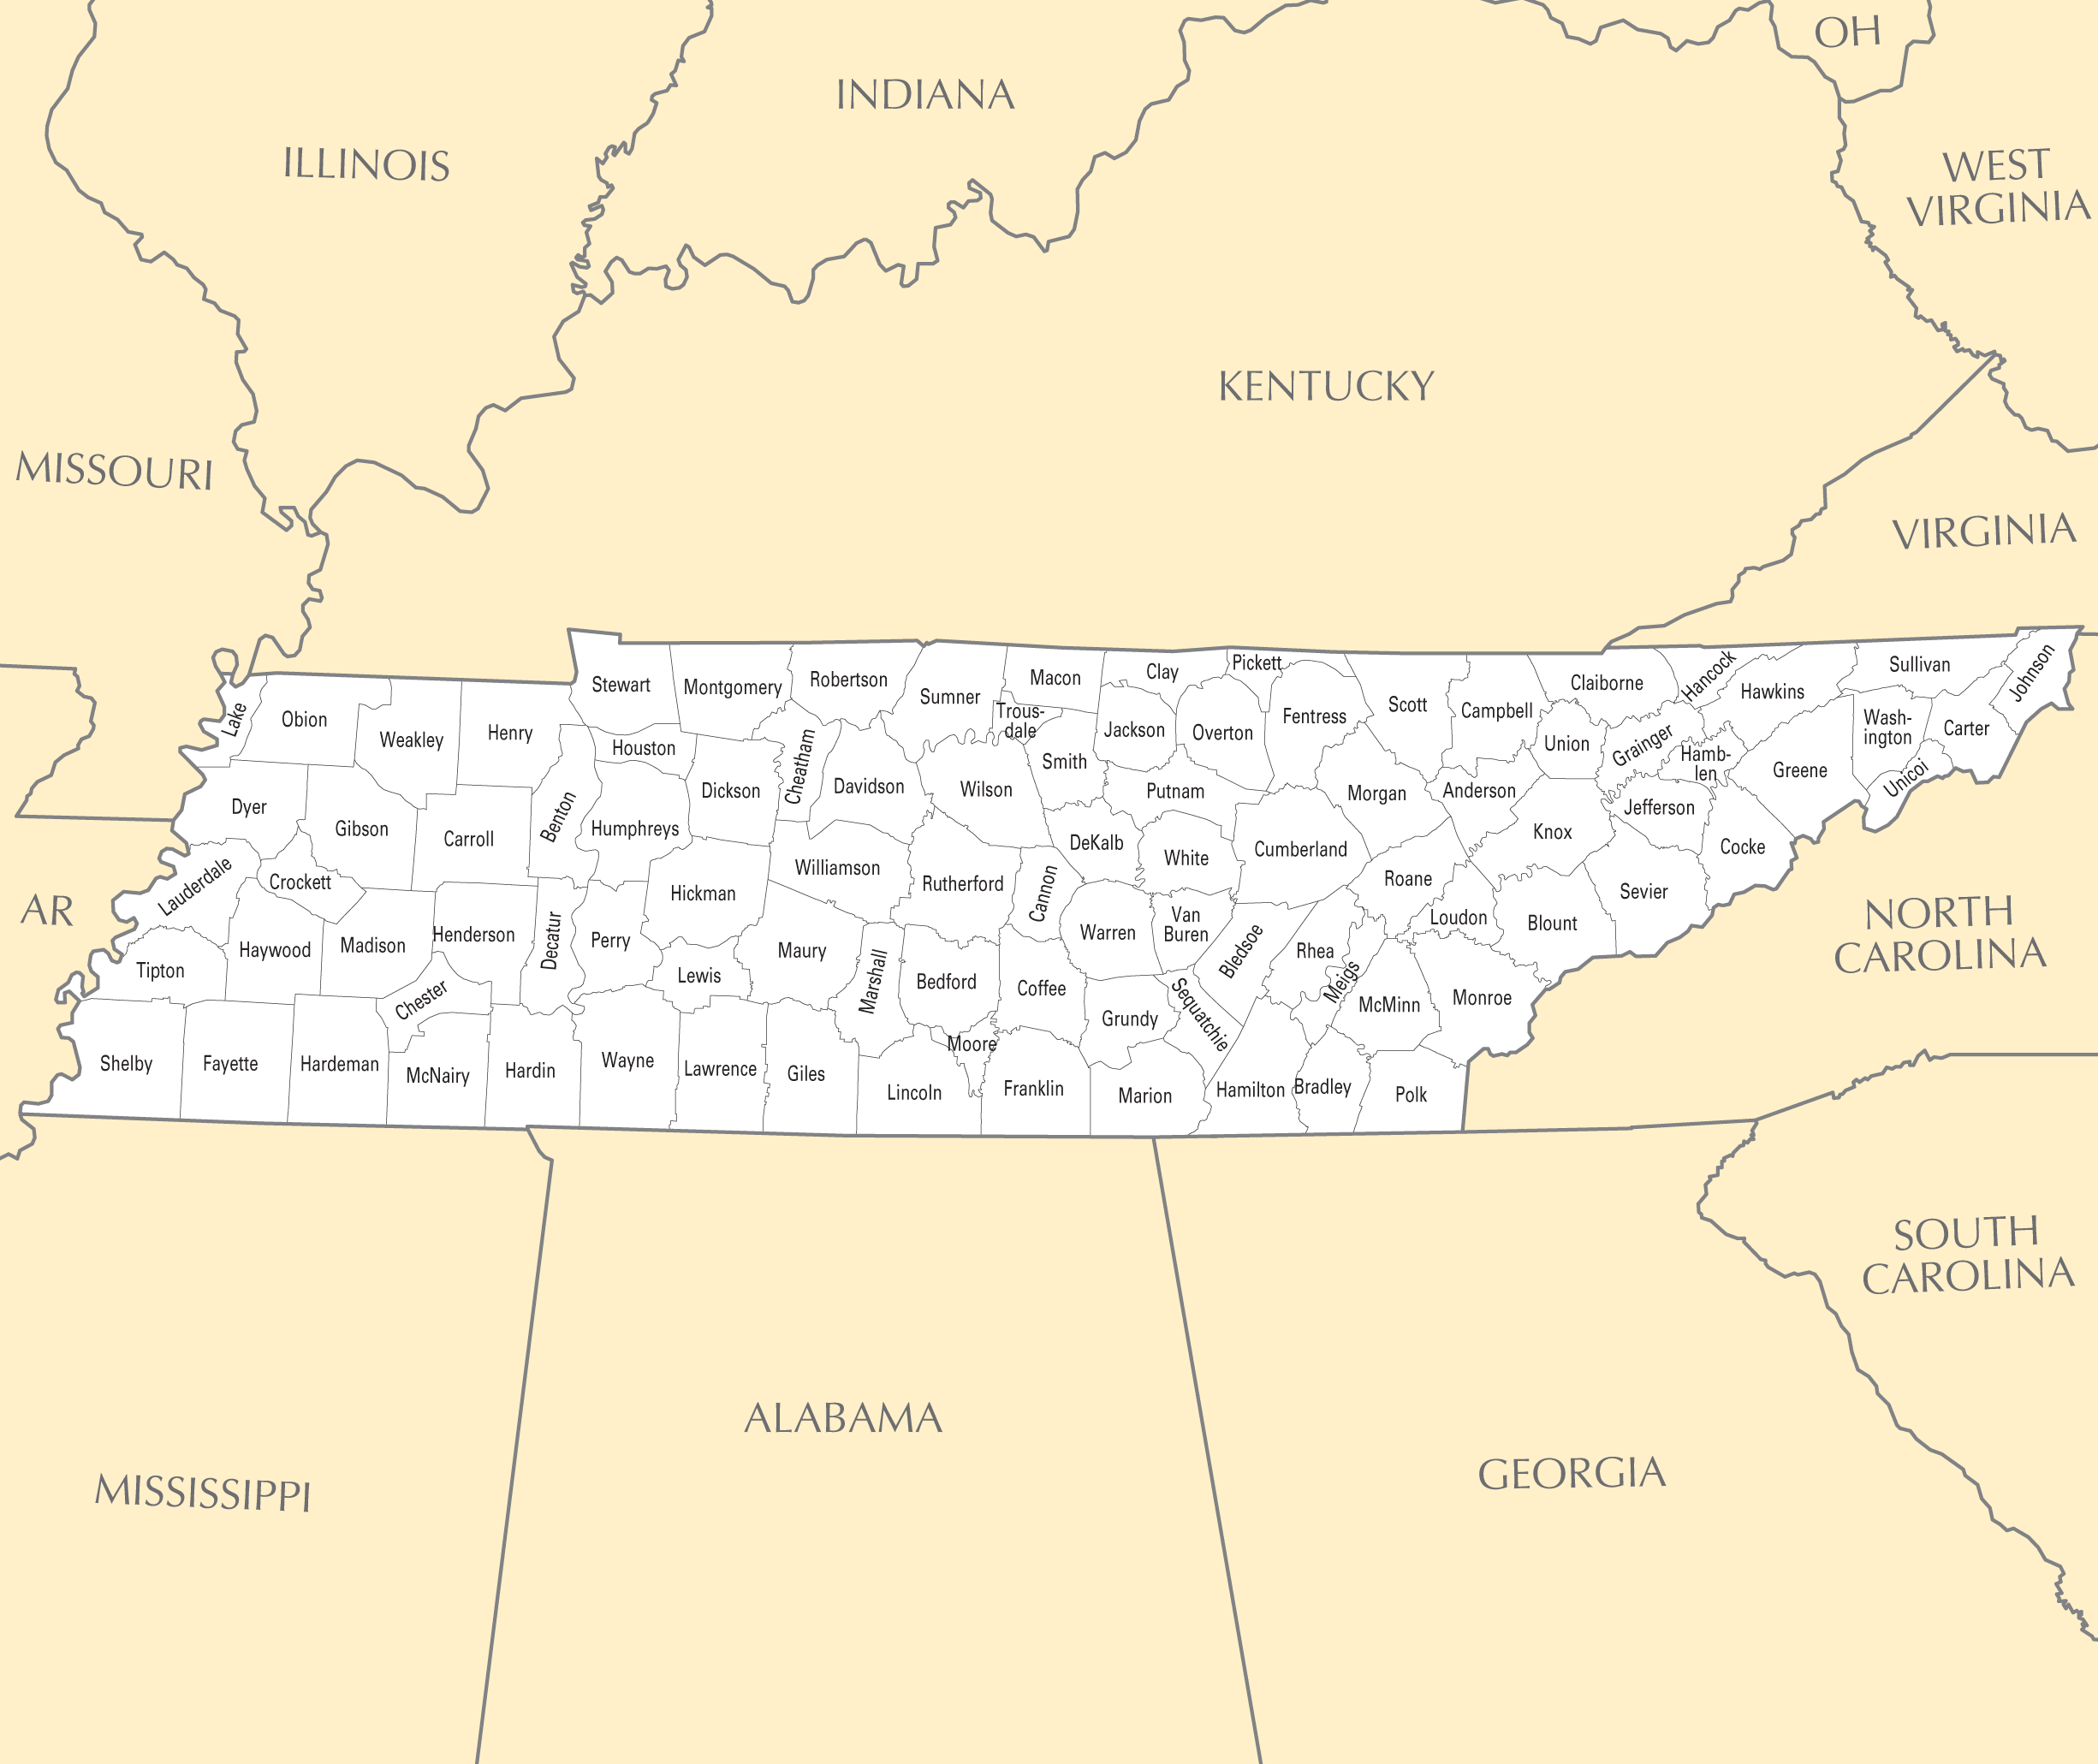 Tennessee County Map • Mapsof.net